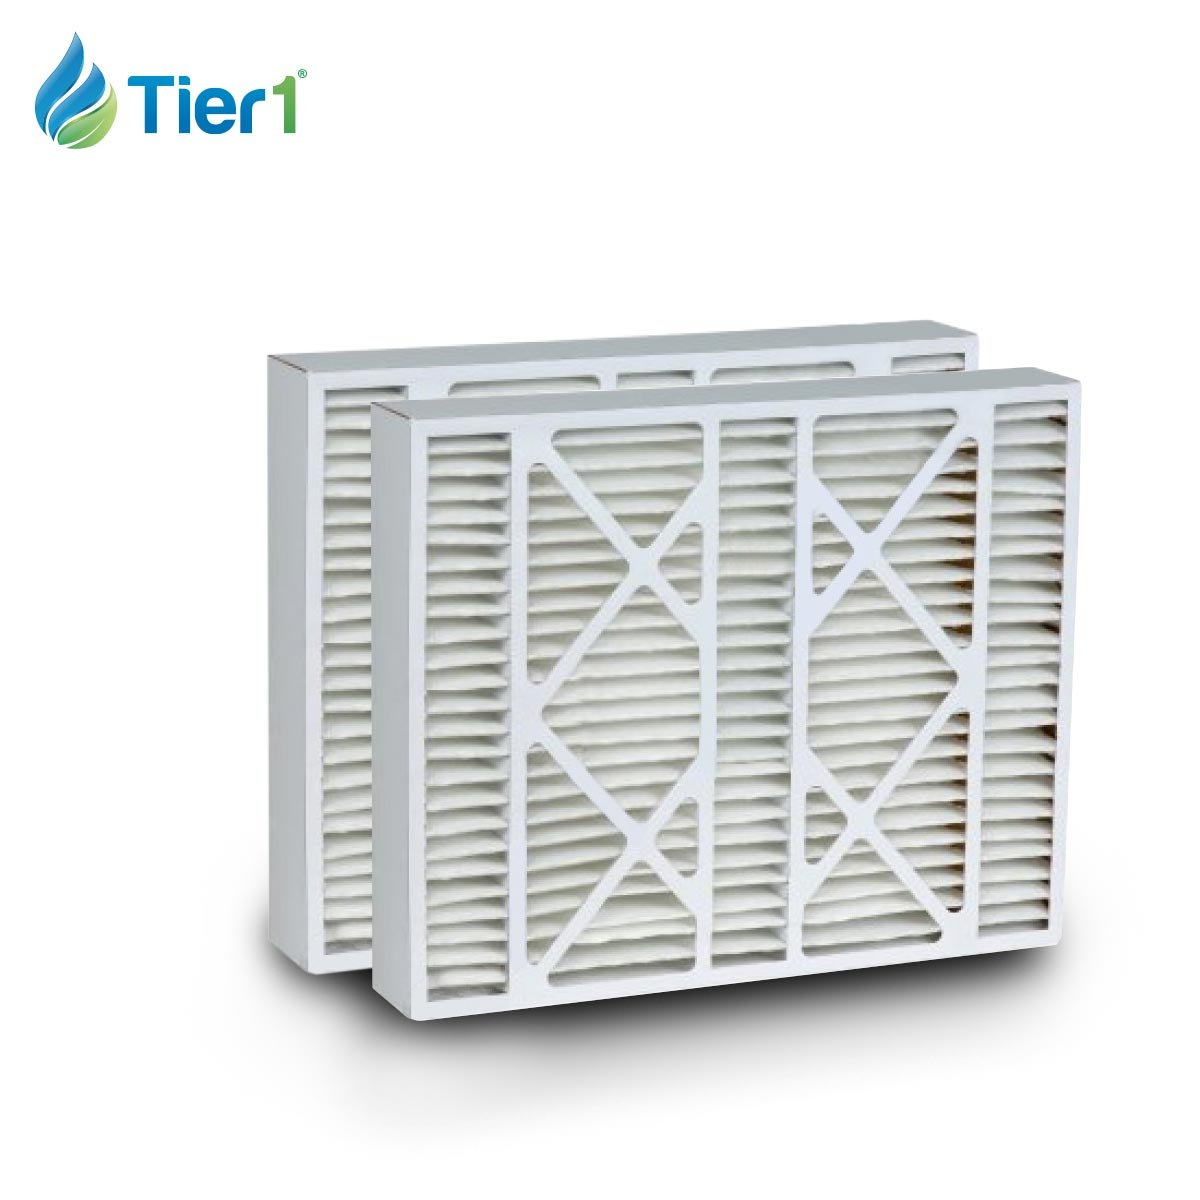 Tier1 Replacement for White-Rodgers 16x21x5 Merv 11 FR1000-100 Air Filter 2 Pack